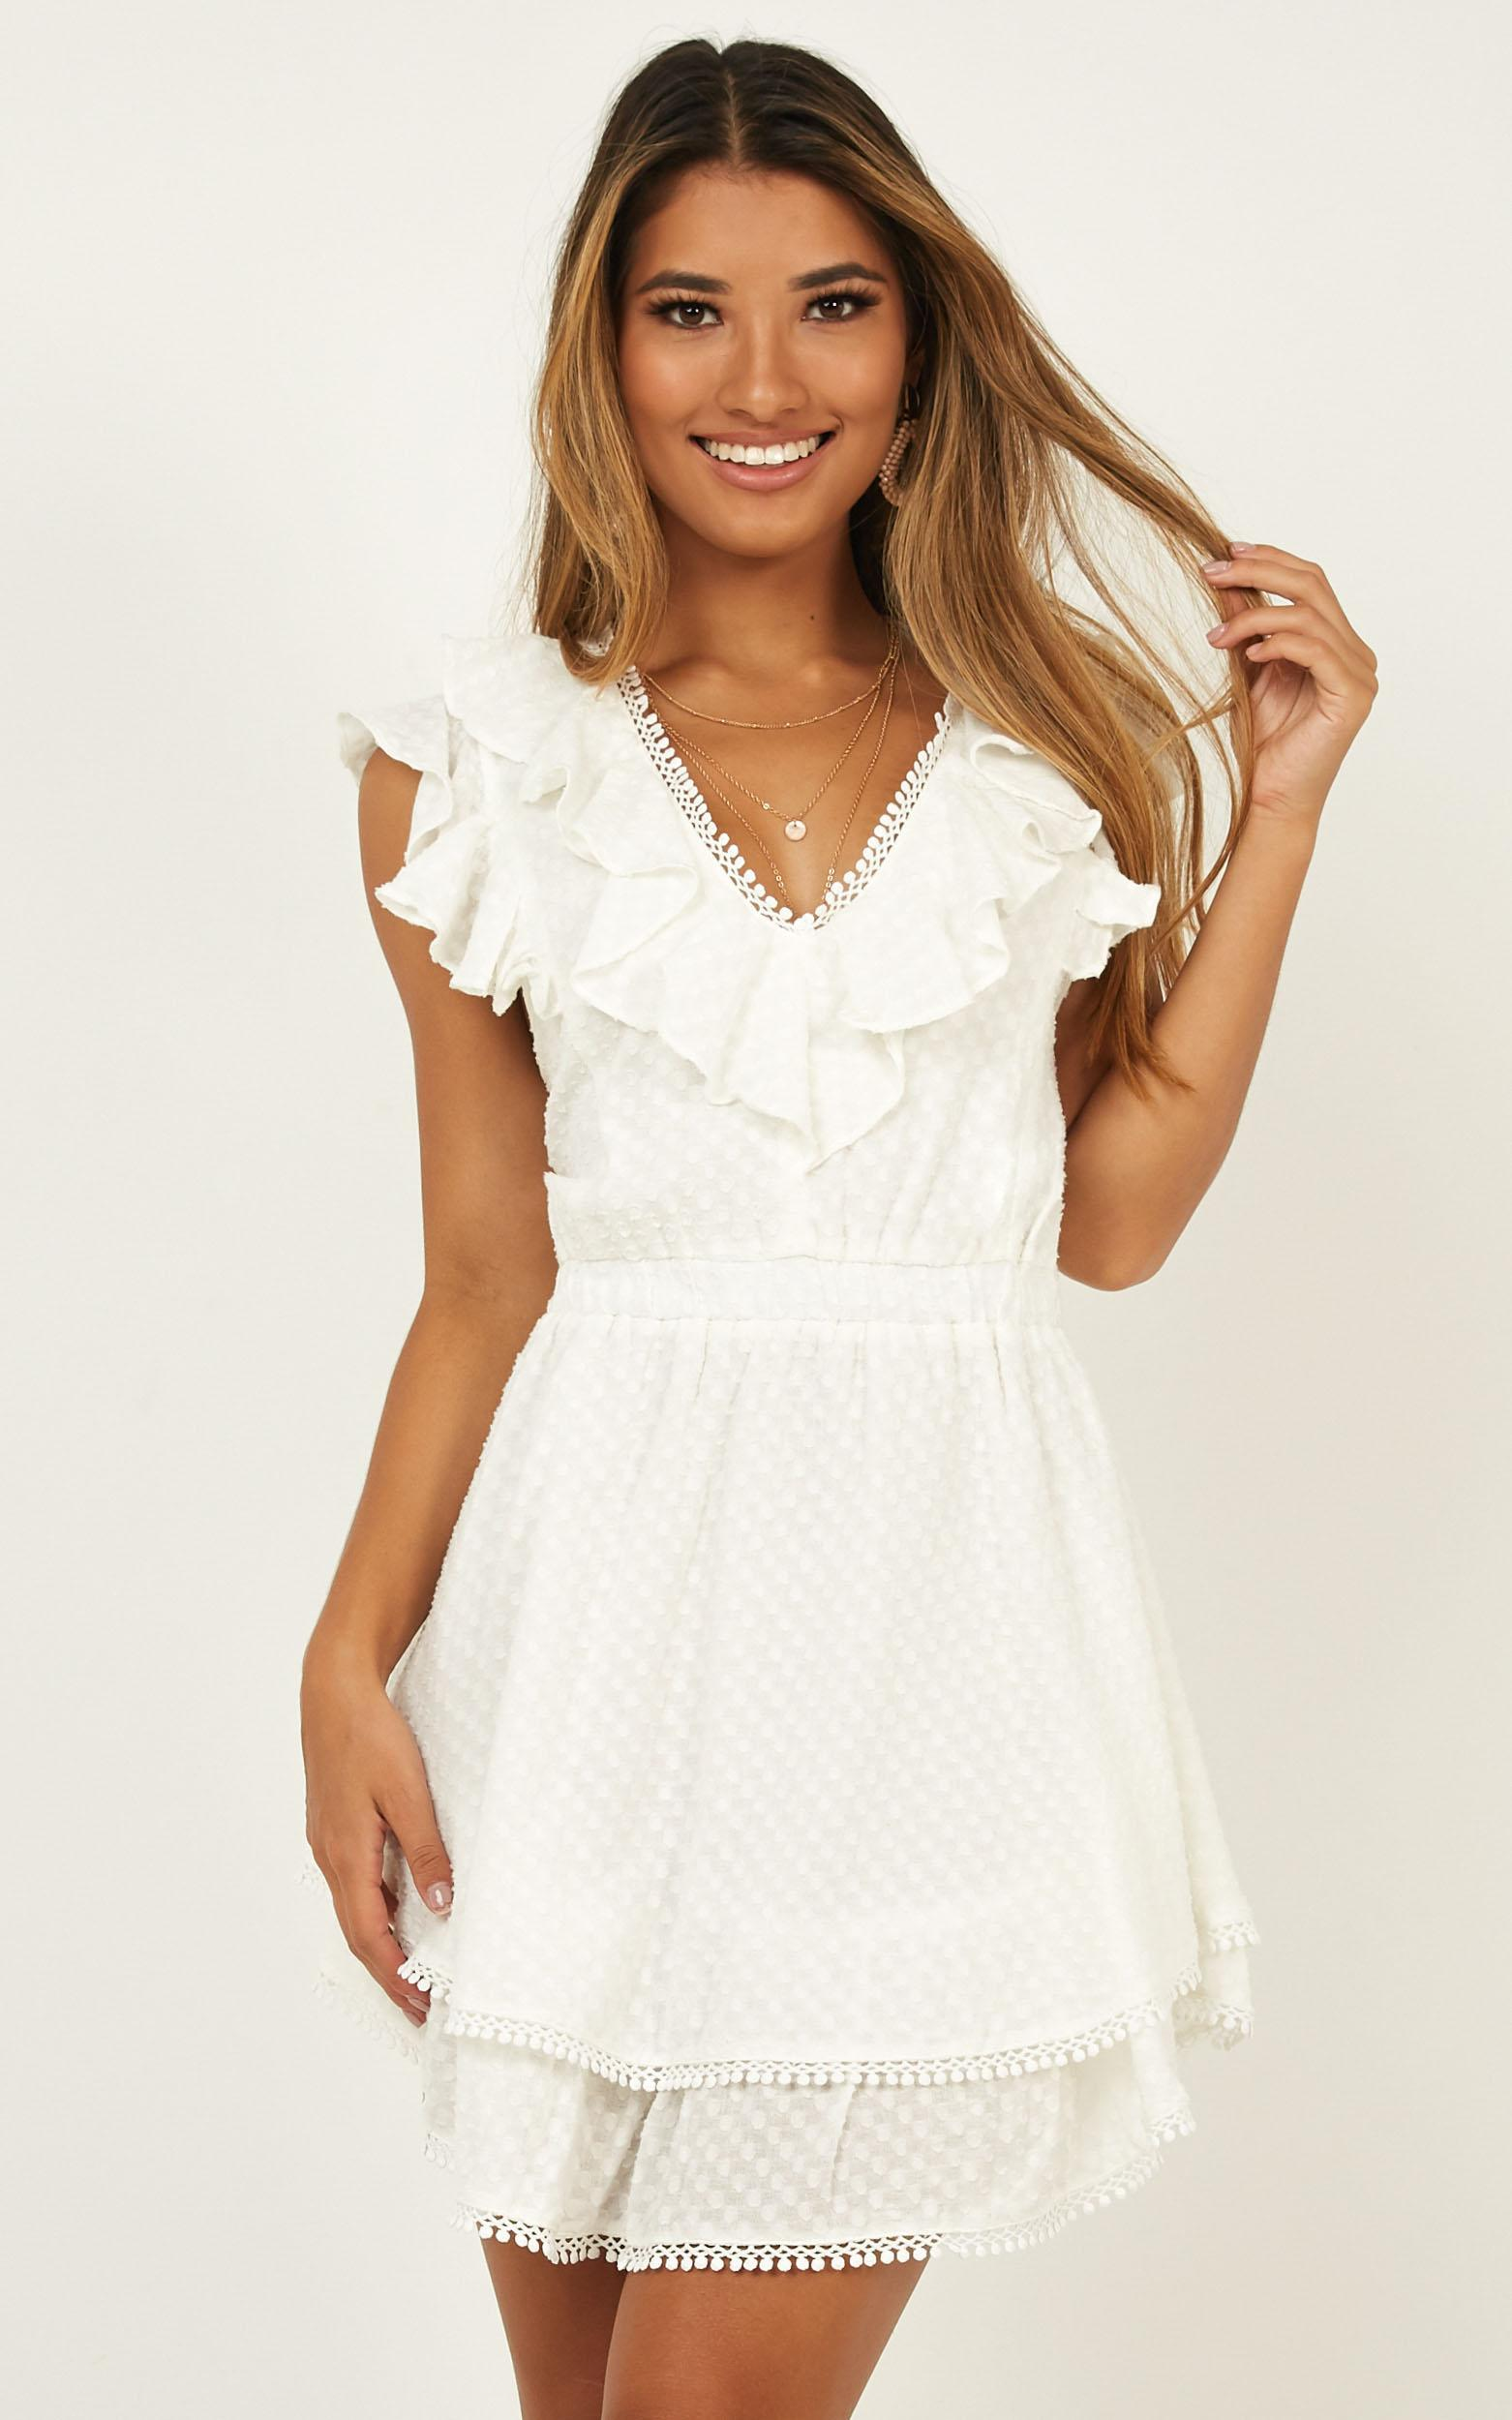 Fly North Dress in white - 20 (XXXXL), White, hi-res image number null